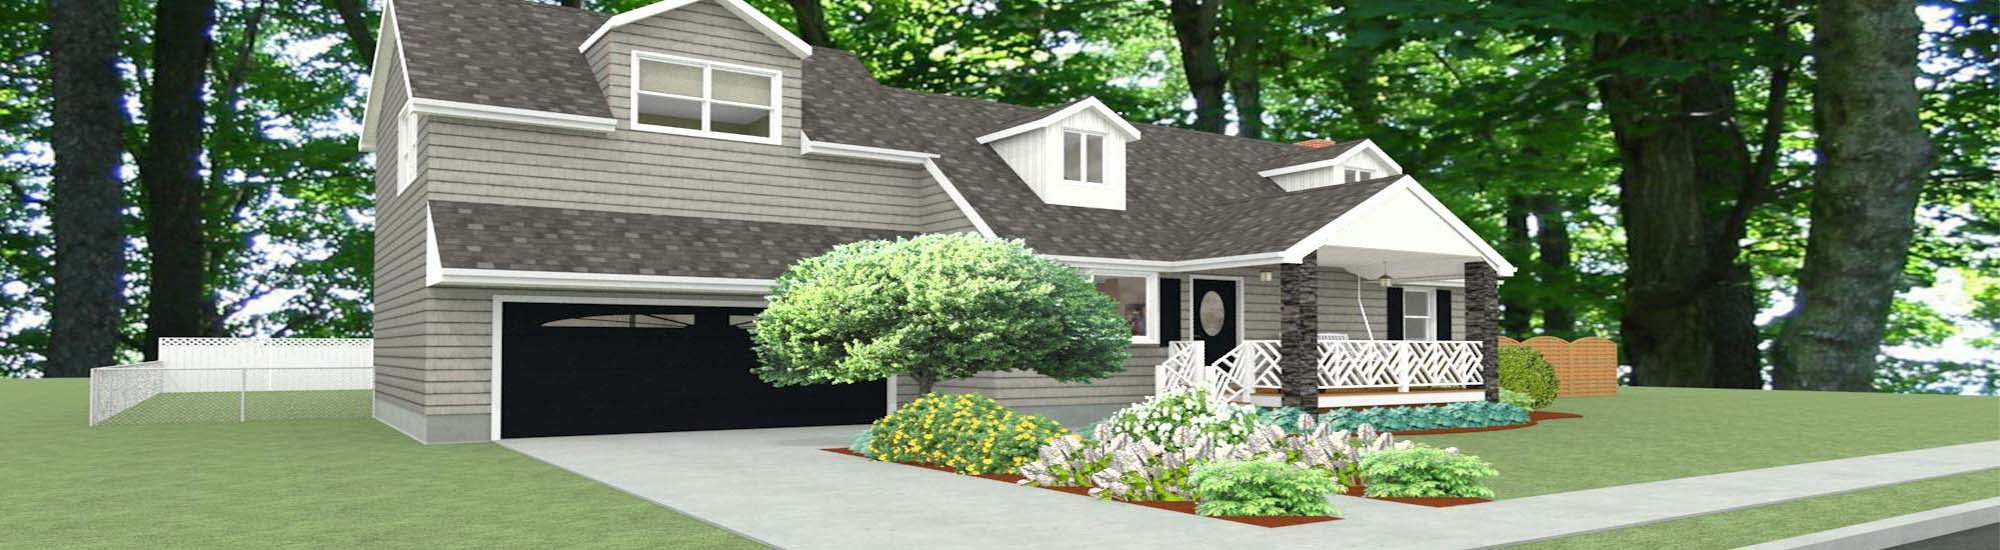 exterior-cad-1-design-build-pros